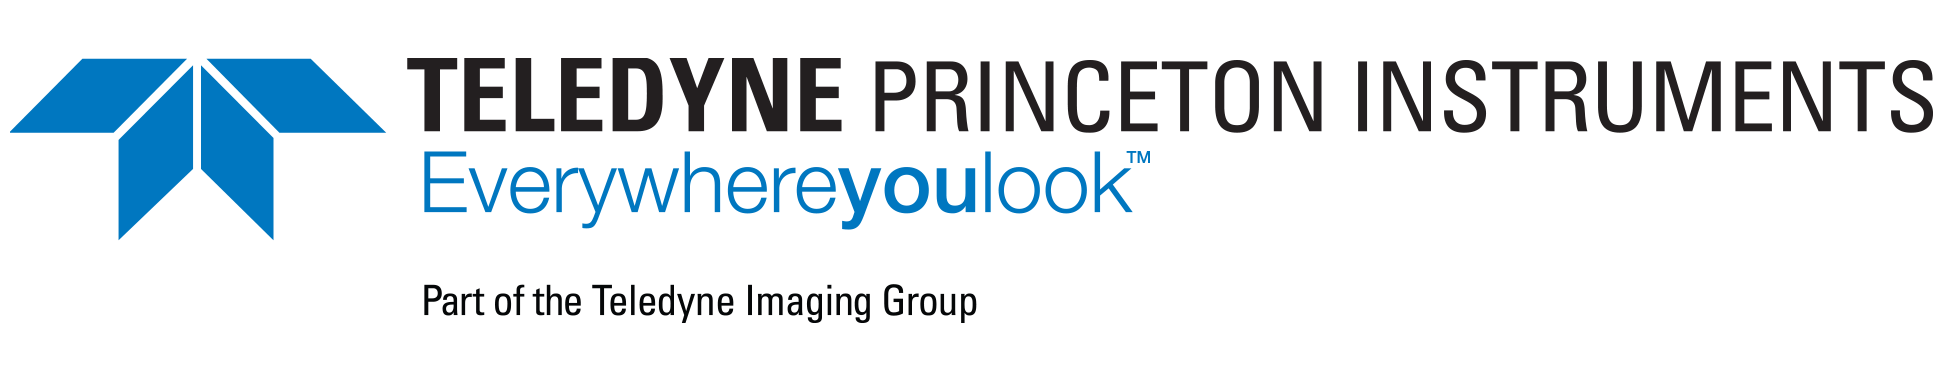 Teledyne Princeton Instruments | Everywhere you look | Part of the Teledyne Imaging Group